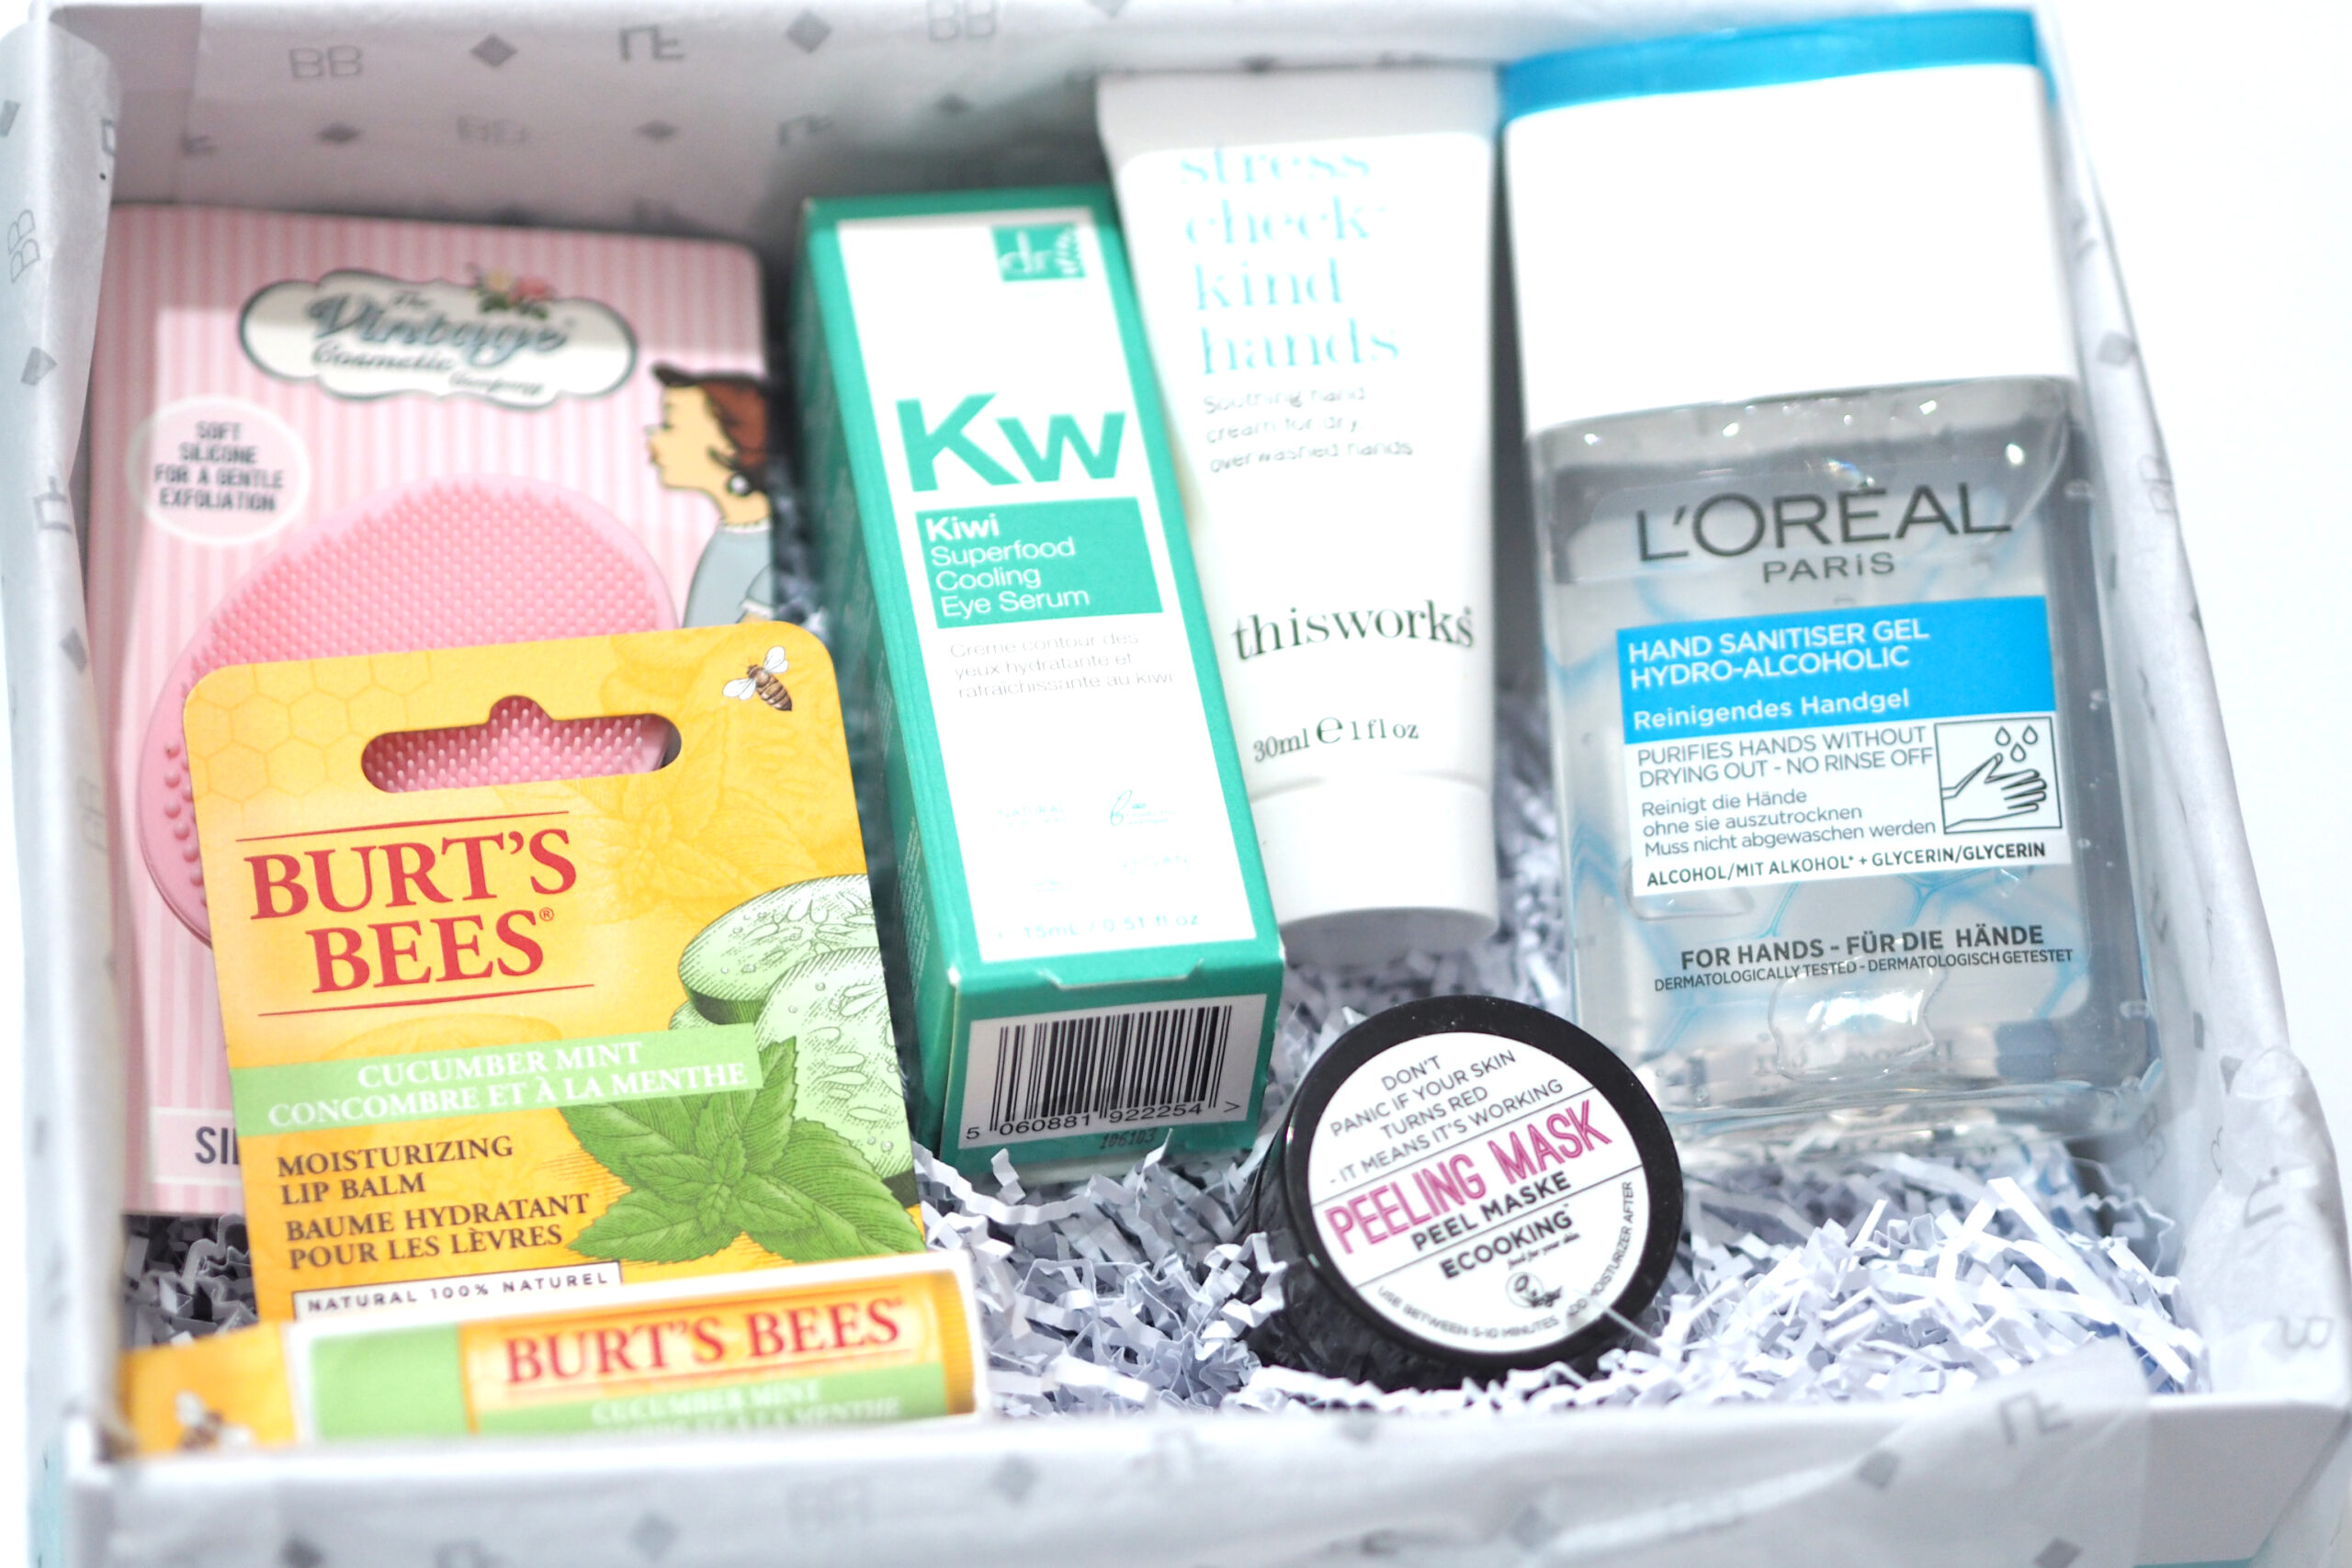 Lookfantastic Ethereal Edition Beauty Box May 2021 Contents Reveal!